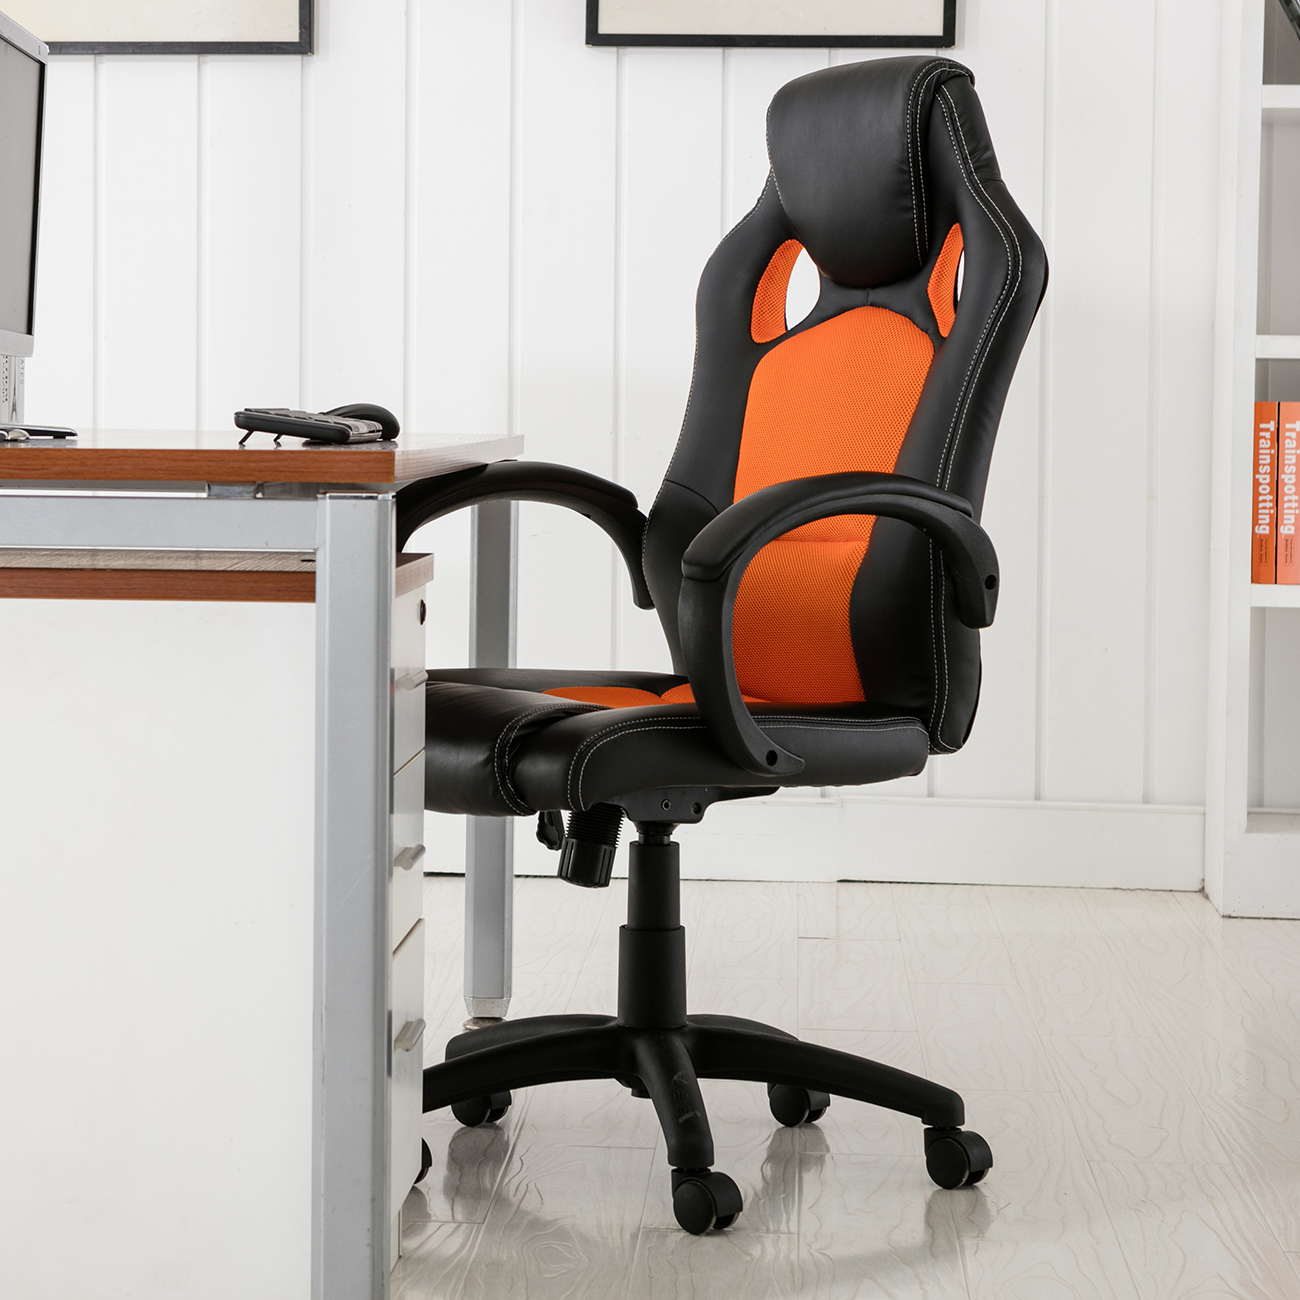 Gaming Computer Chairs High Back Race Car Style Bucket Seat Office Desk Chair